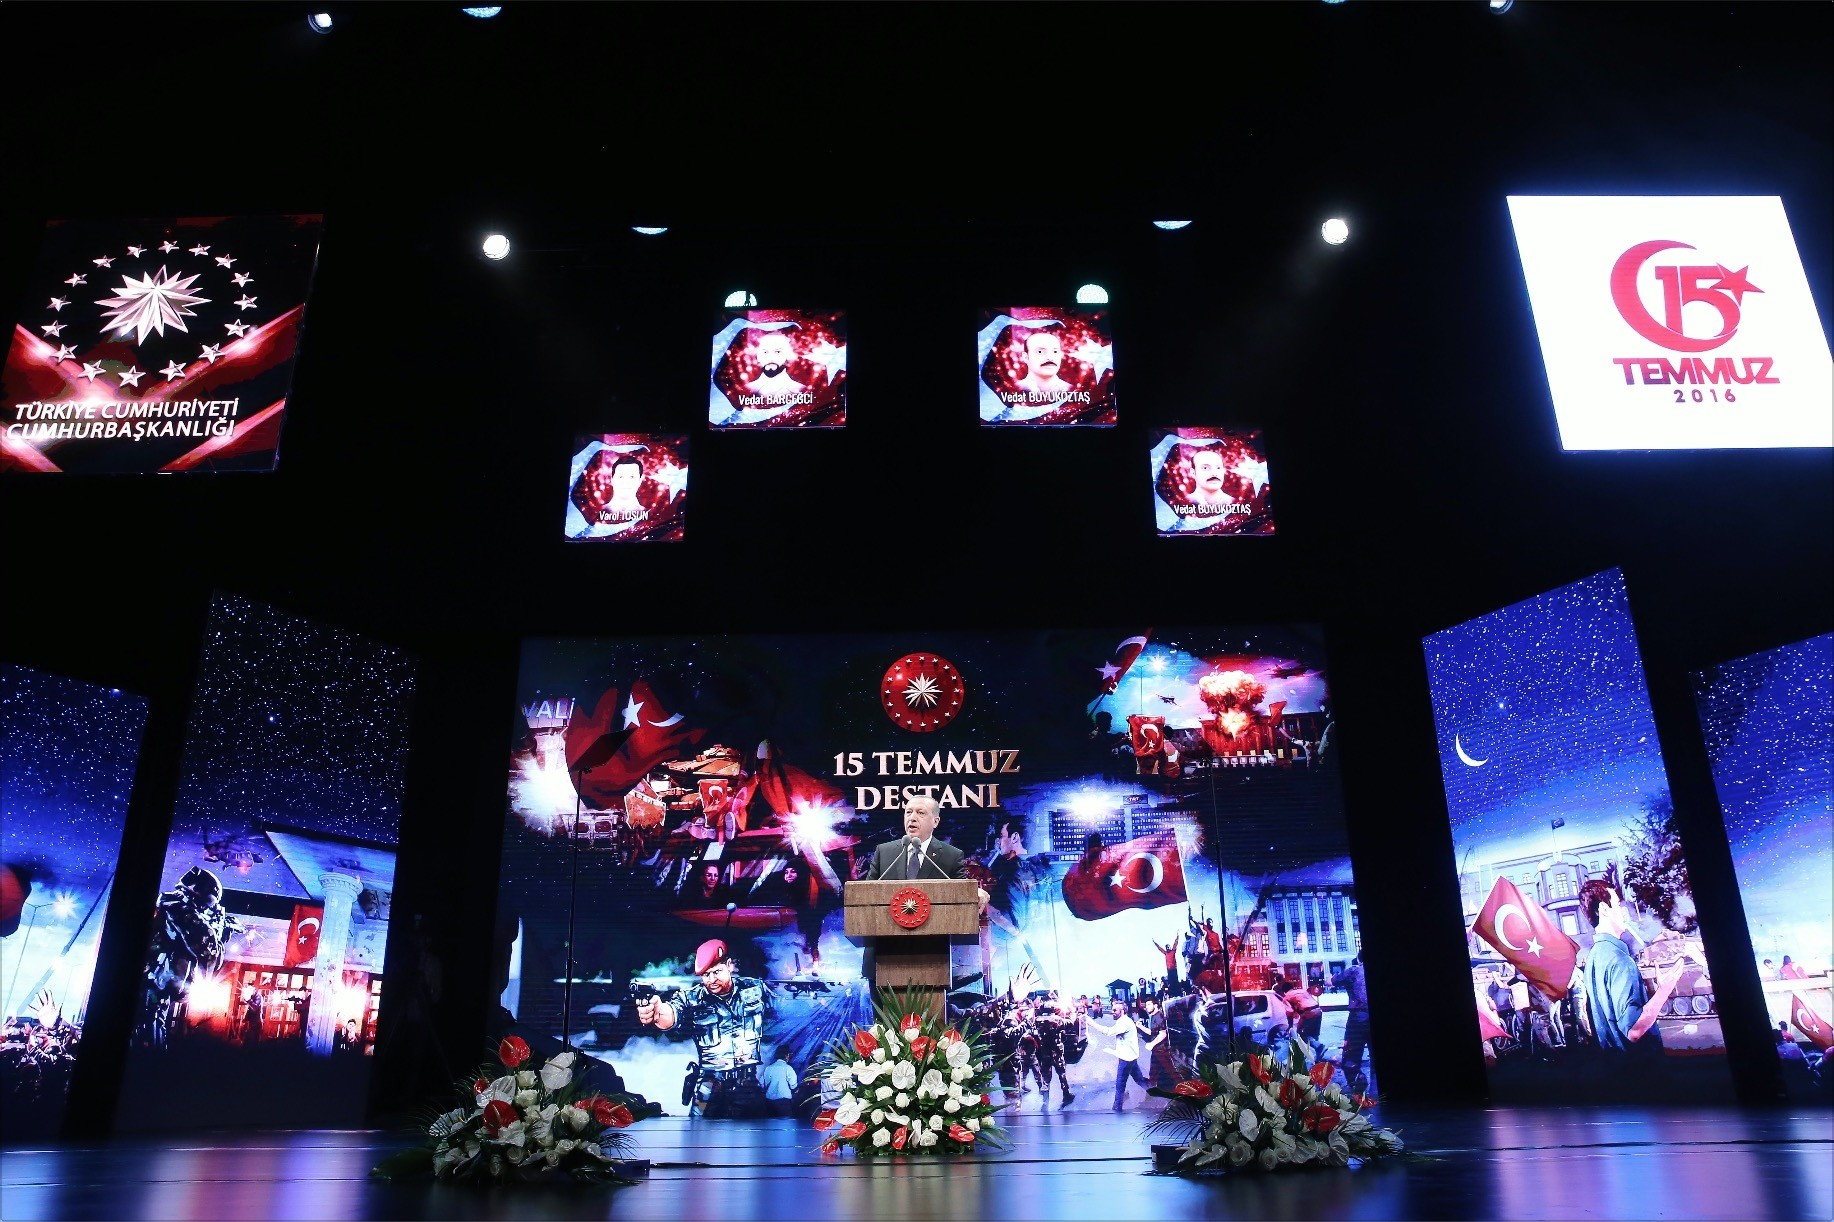 Erdou011fan addresses the audience against a backdrop of photos of those who died during the coup attempt.